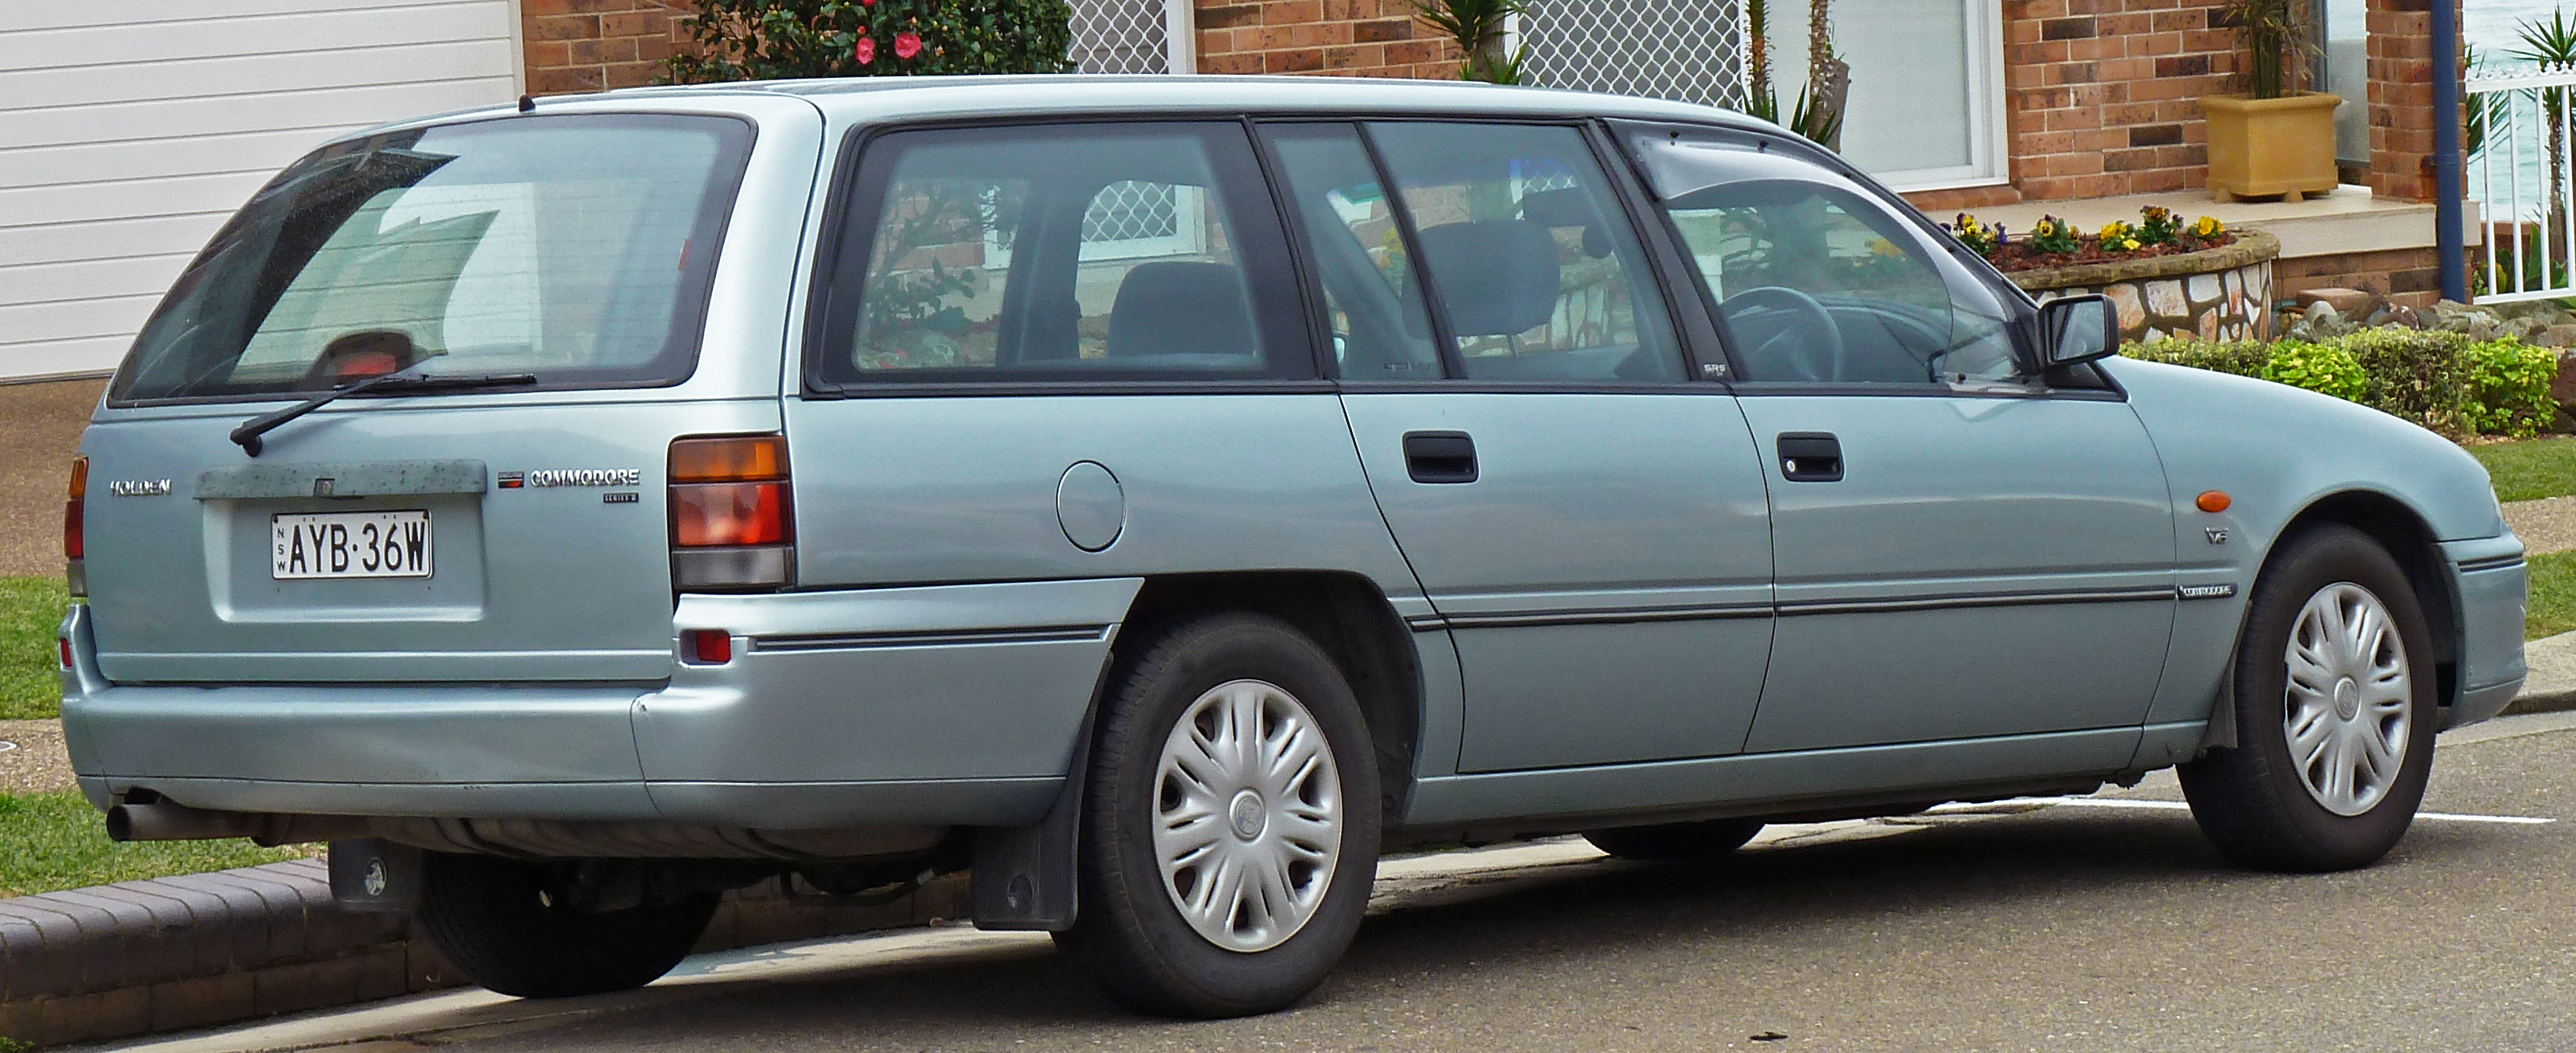 holden commodore 1996 pics #13